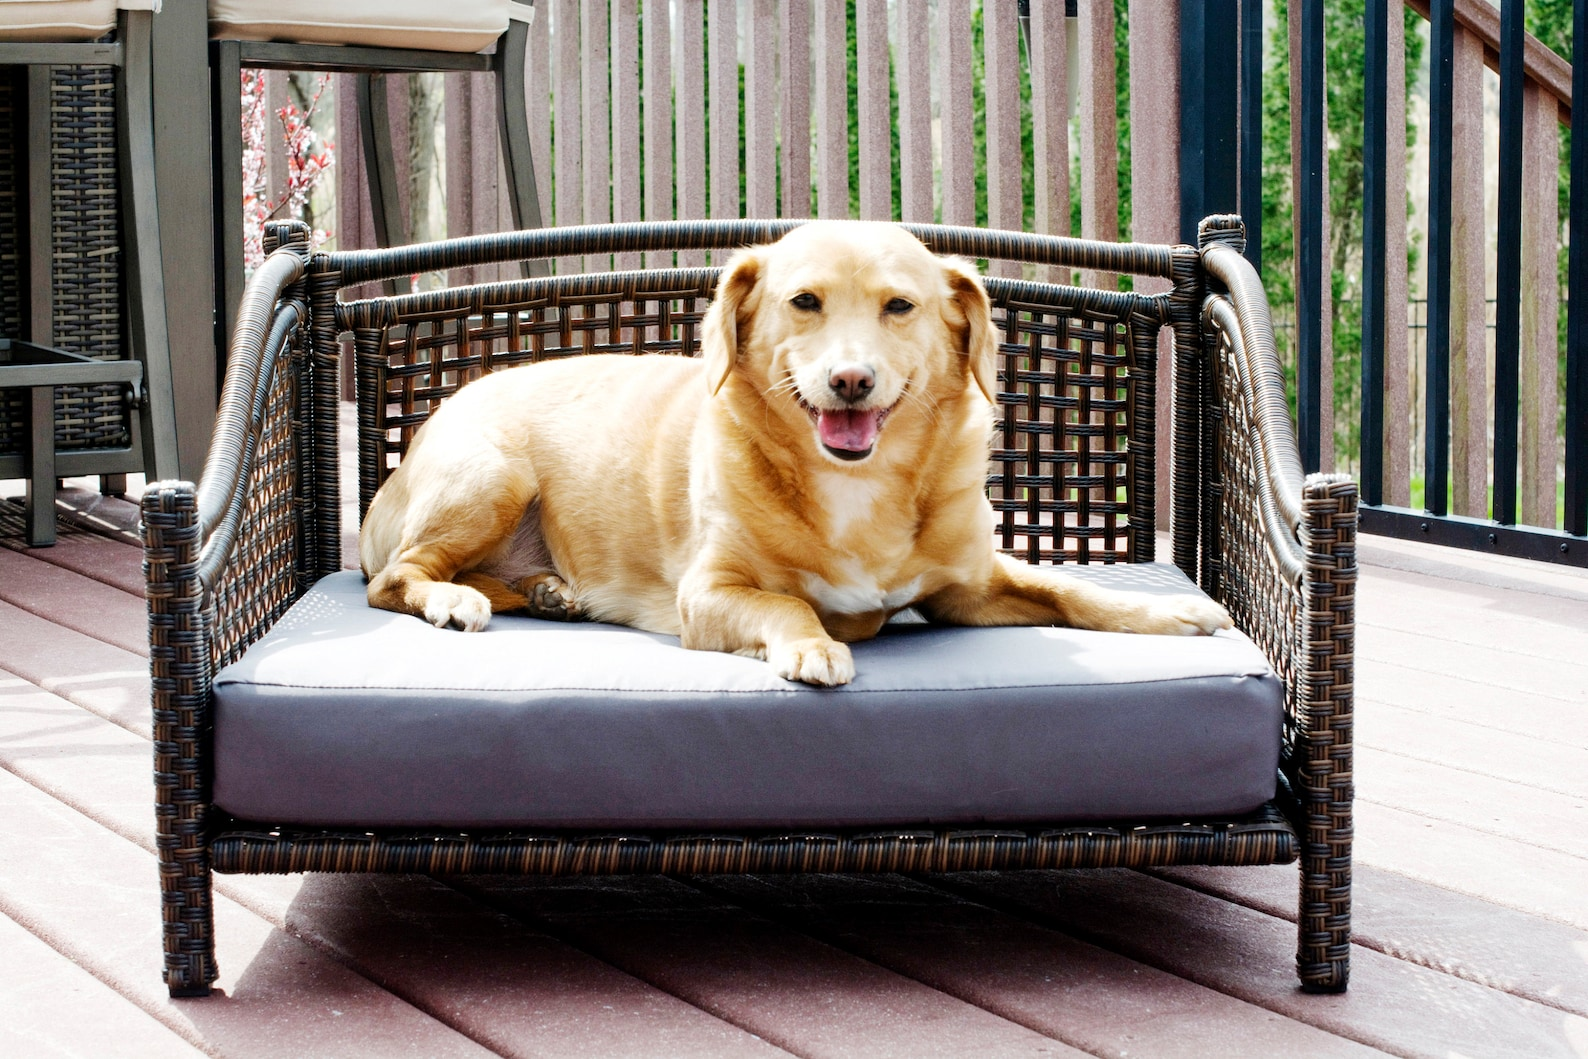 Dog relaxing on a rattan dog bed